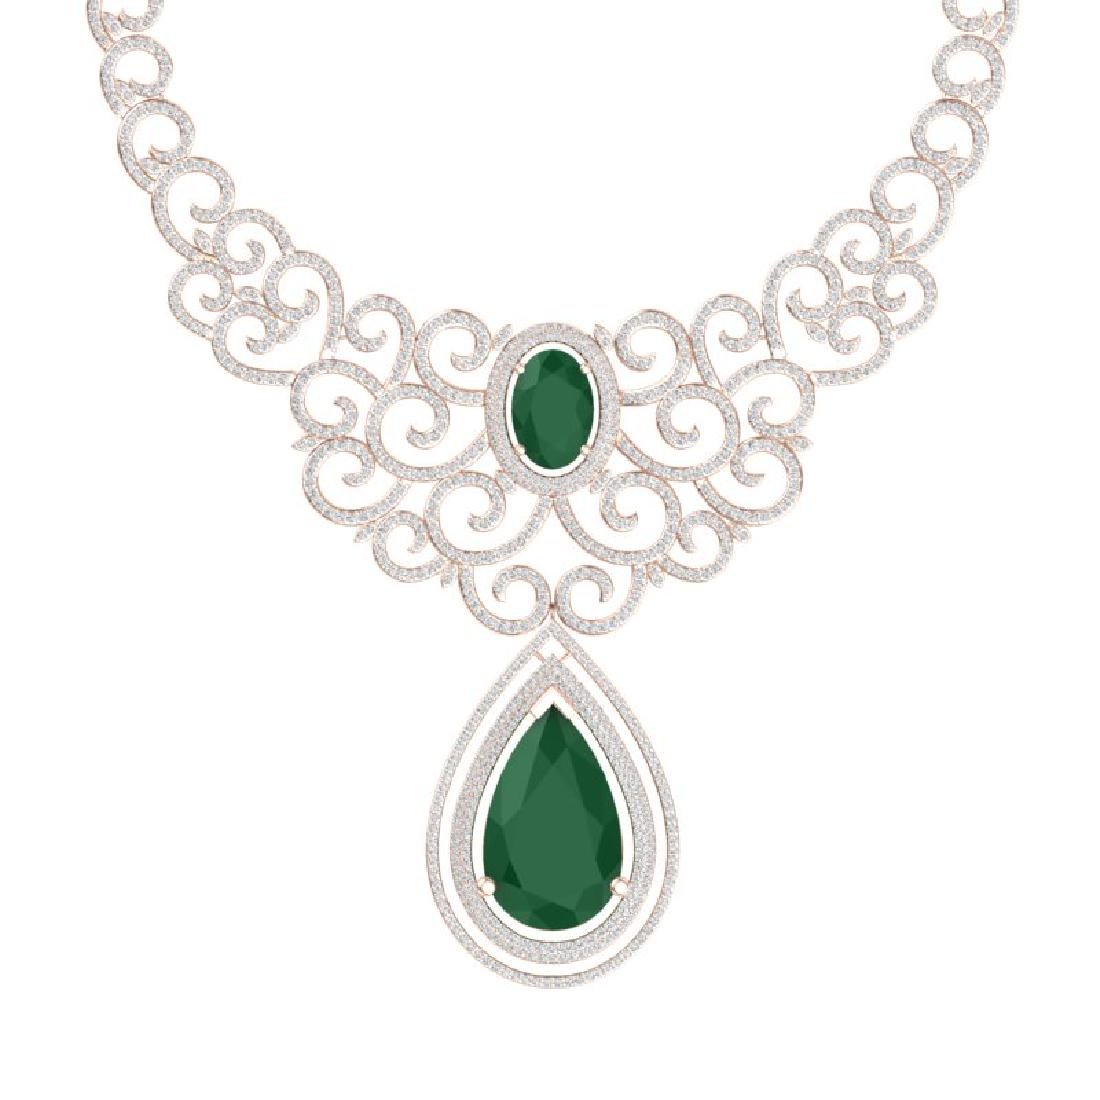 87.52 CTW Royalty Emerald & VS Diamond Necklace 18K - 2